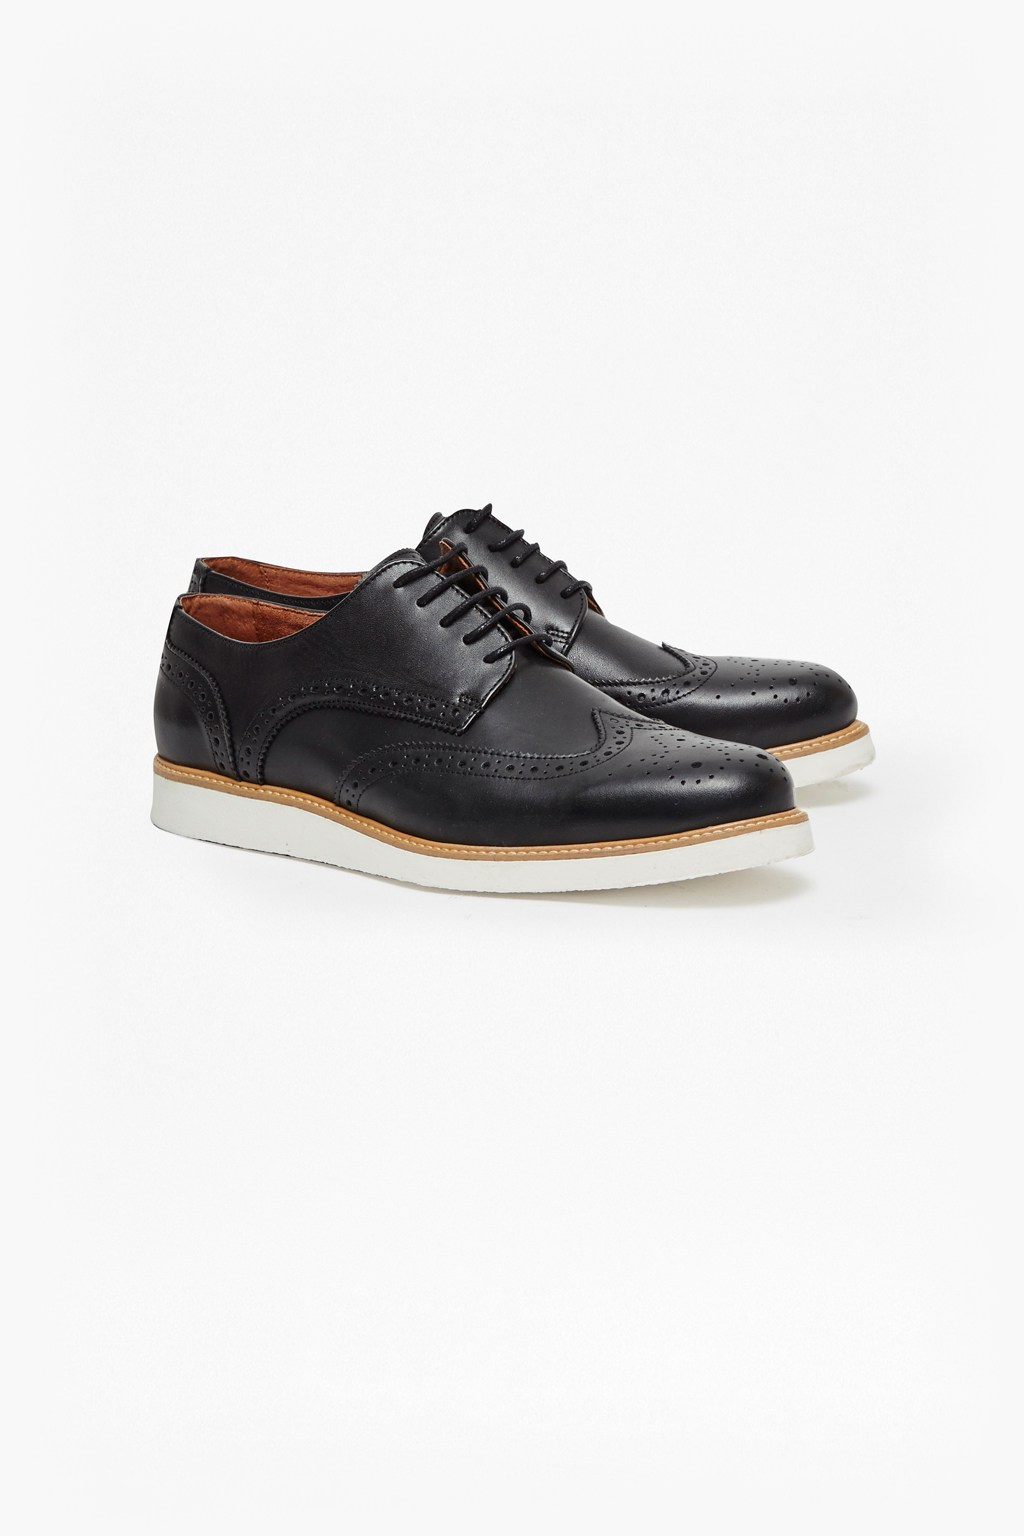 d546b8b8aa071 Casual Leather Brogue Shoes. loading images.